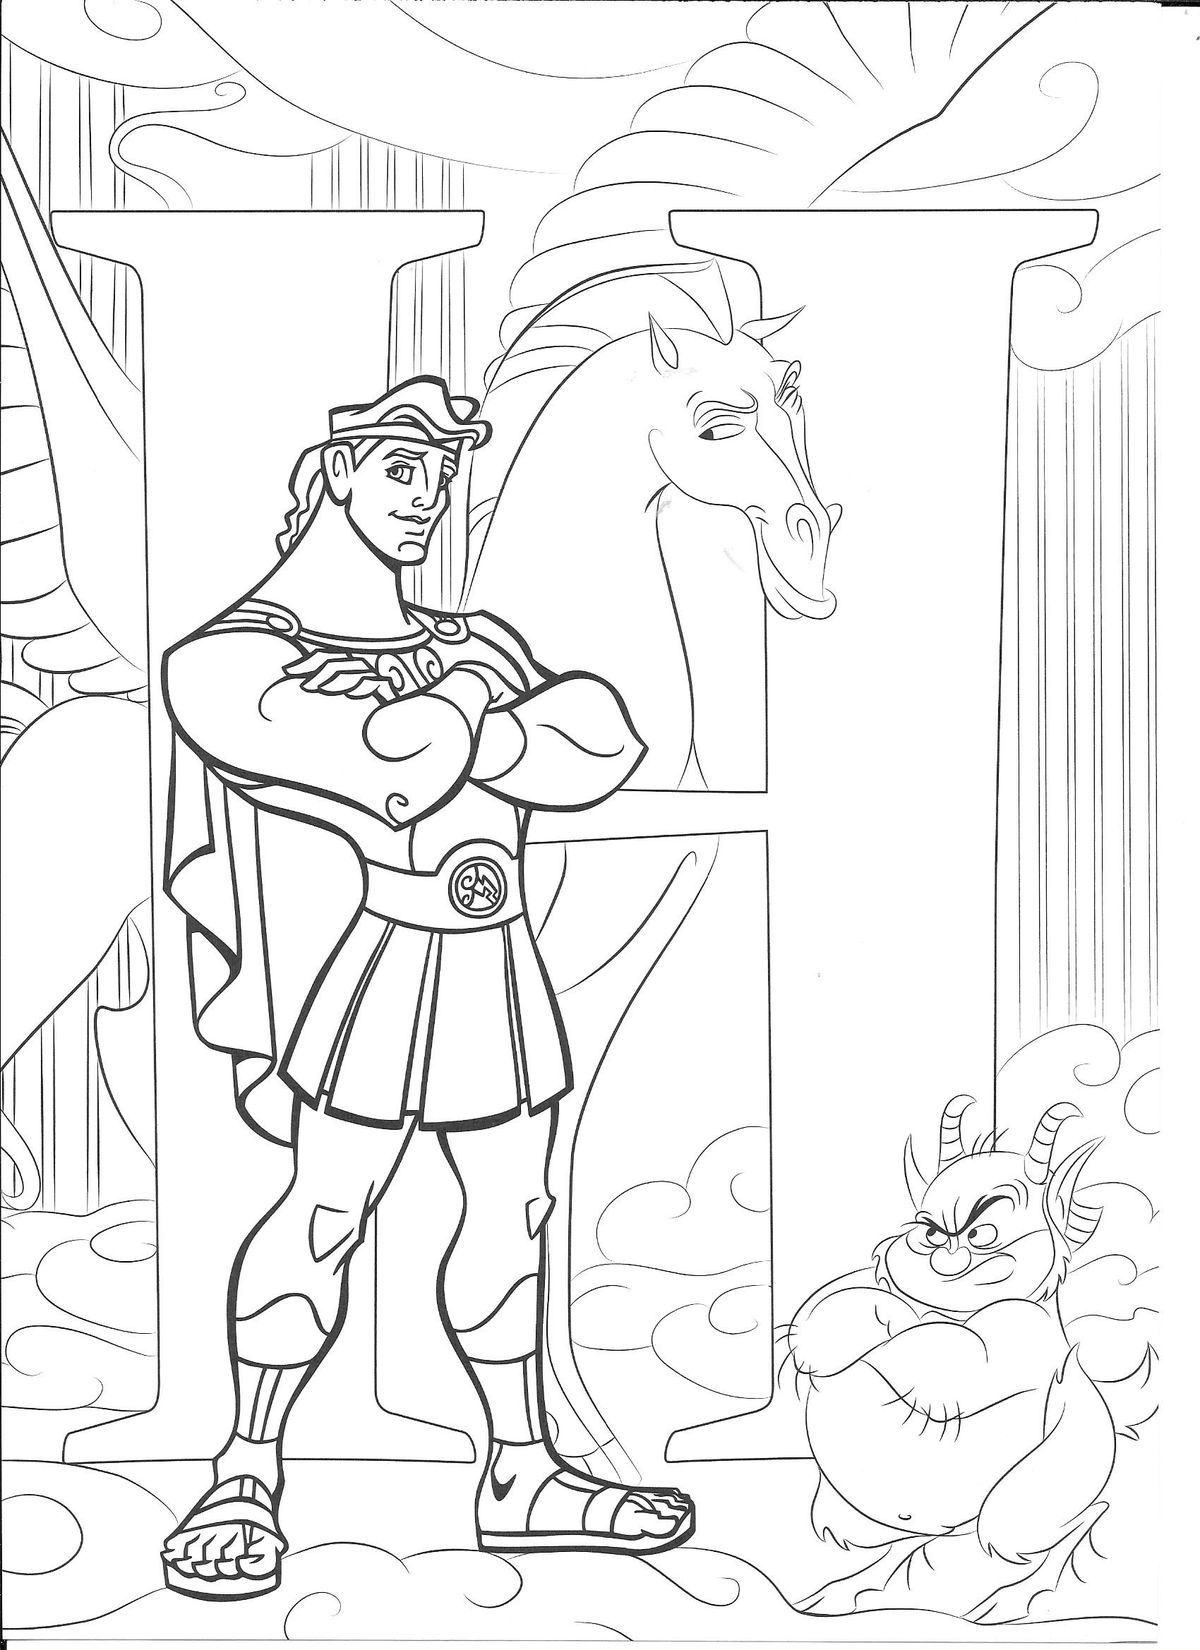 Pin By Mini On Alphabet Coloring Sheets Disney Coloring Sheets Disney Coloring Pages Abc Coloring Pages